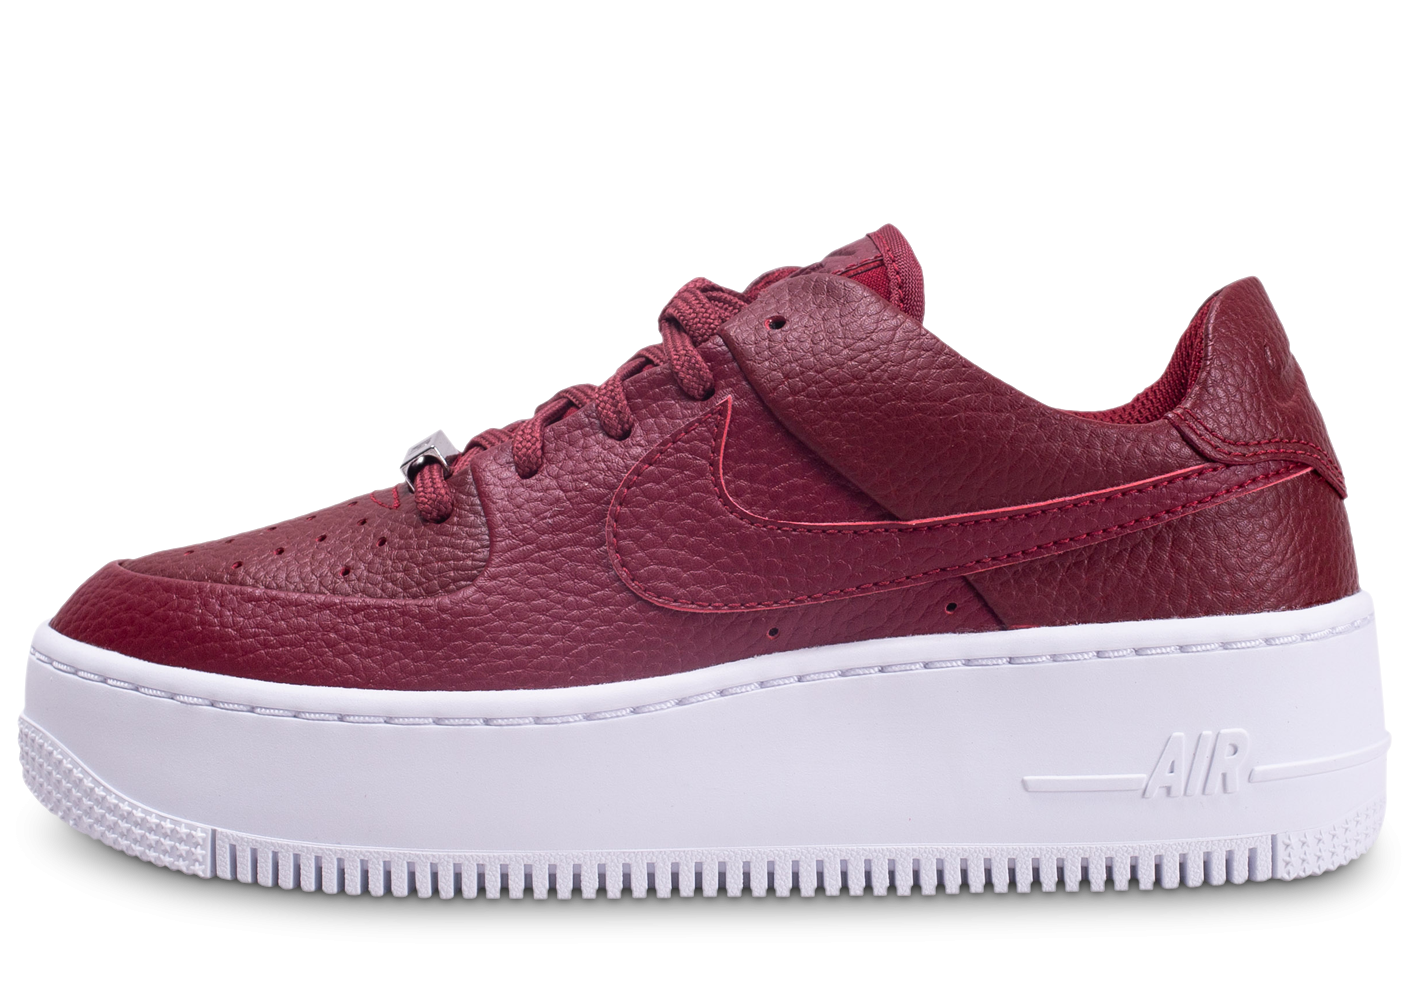 Nike Air Force One Sage Low Rouge